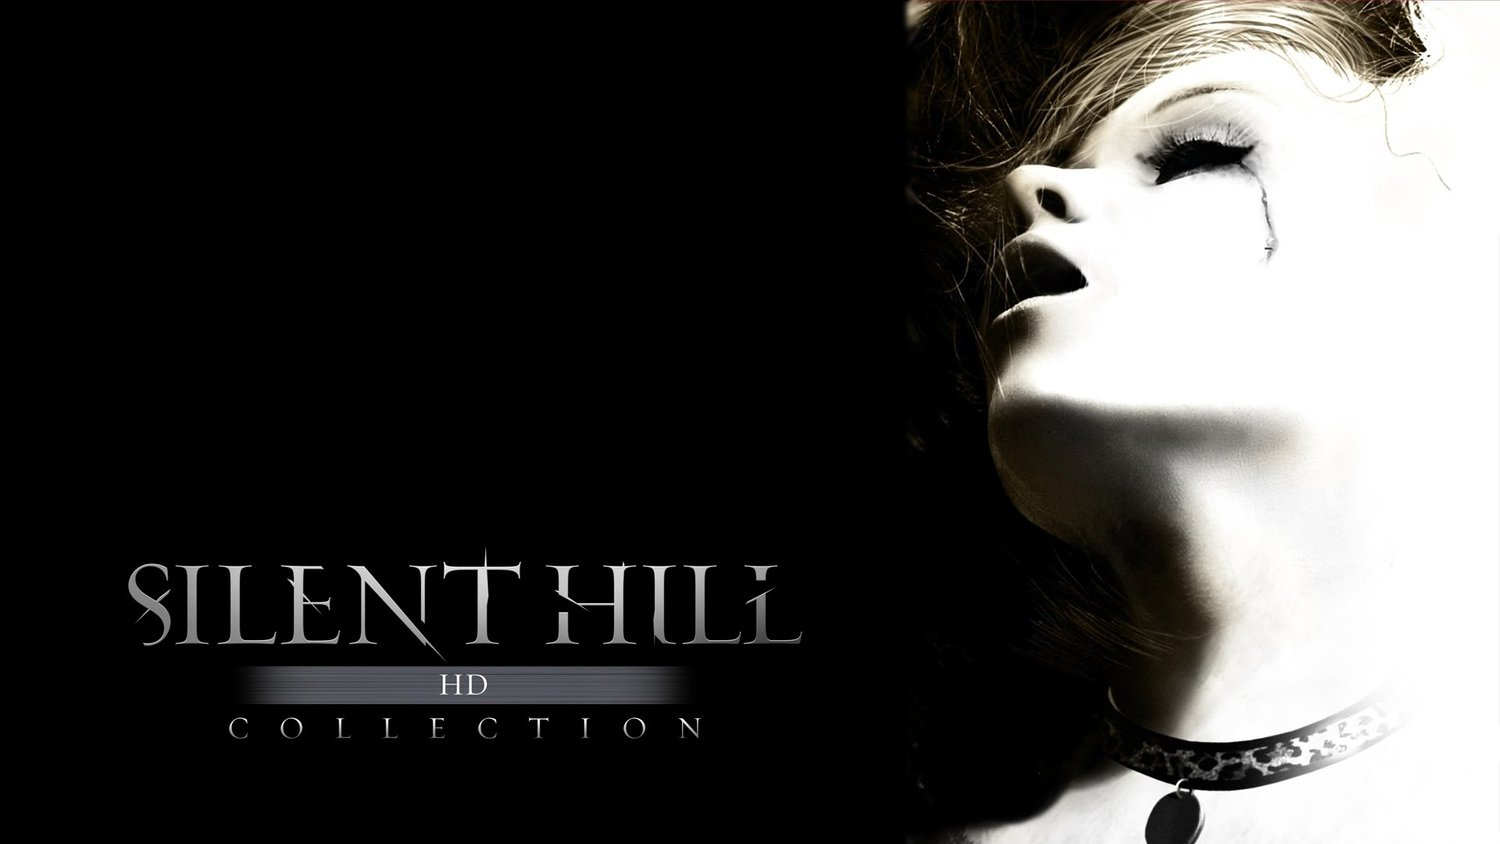 Silent Hill Hd Collection Darkstation